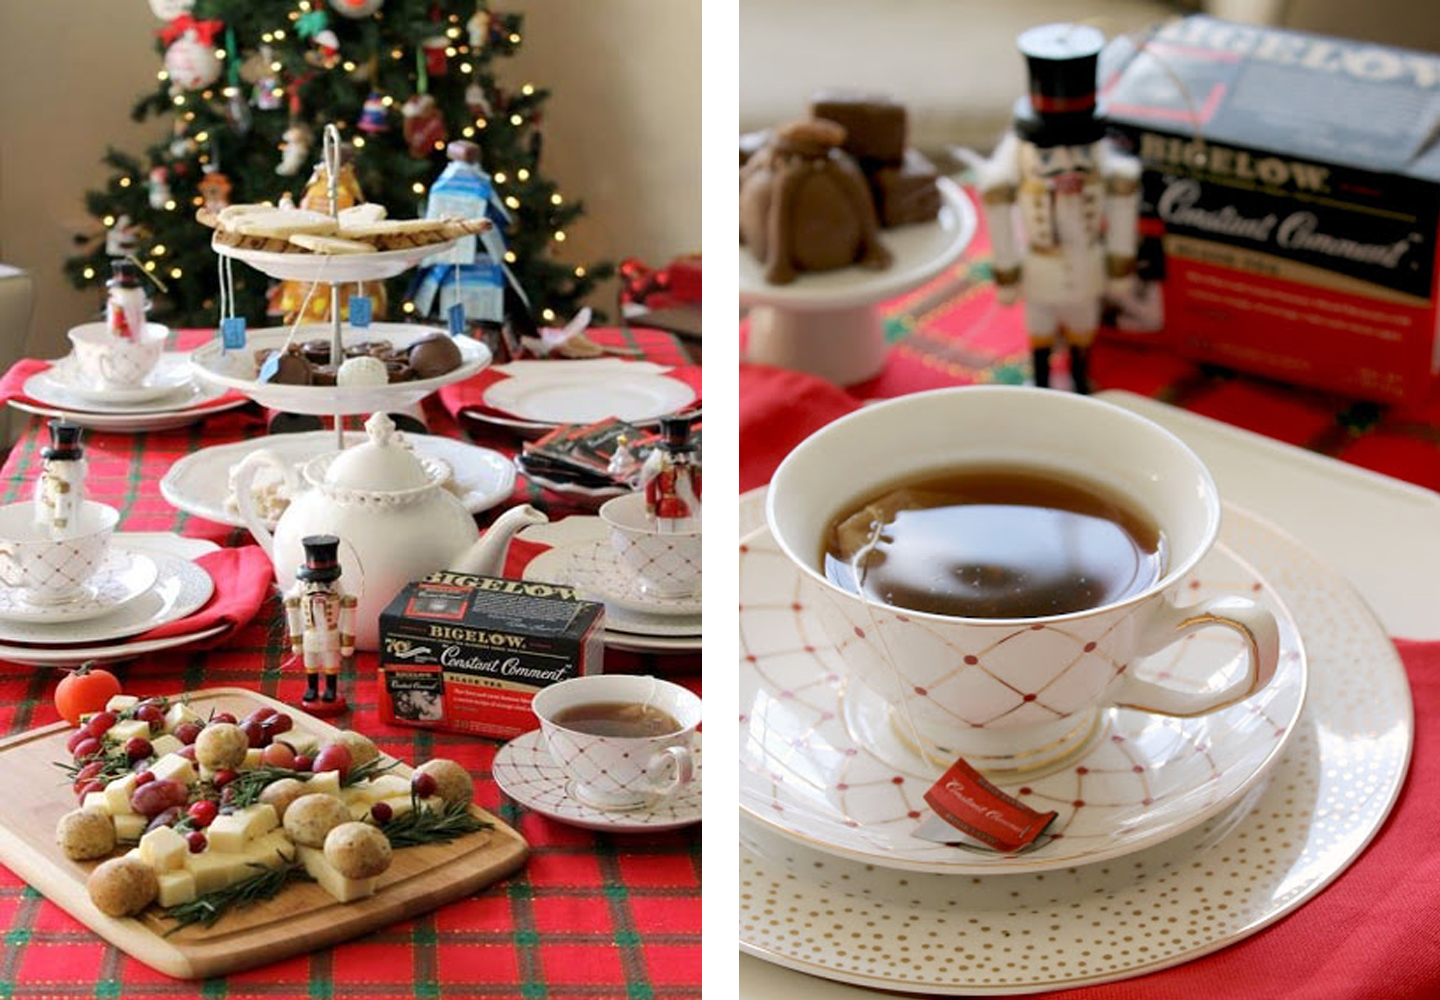 Dinner table with a holiday tea party setup.